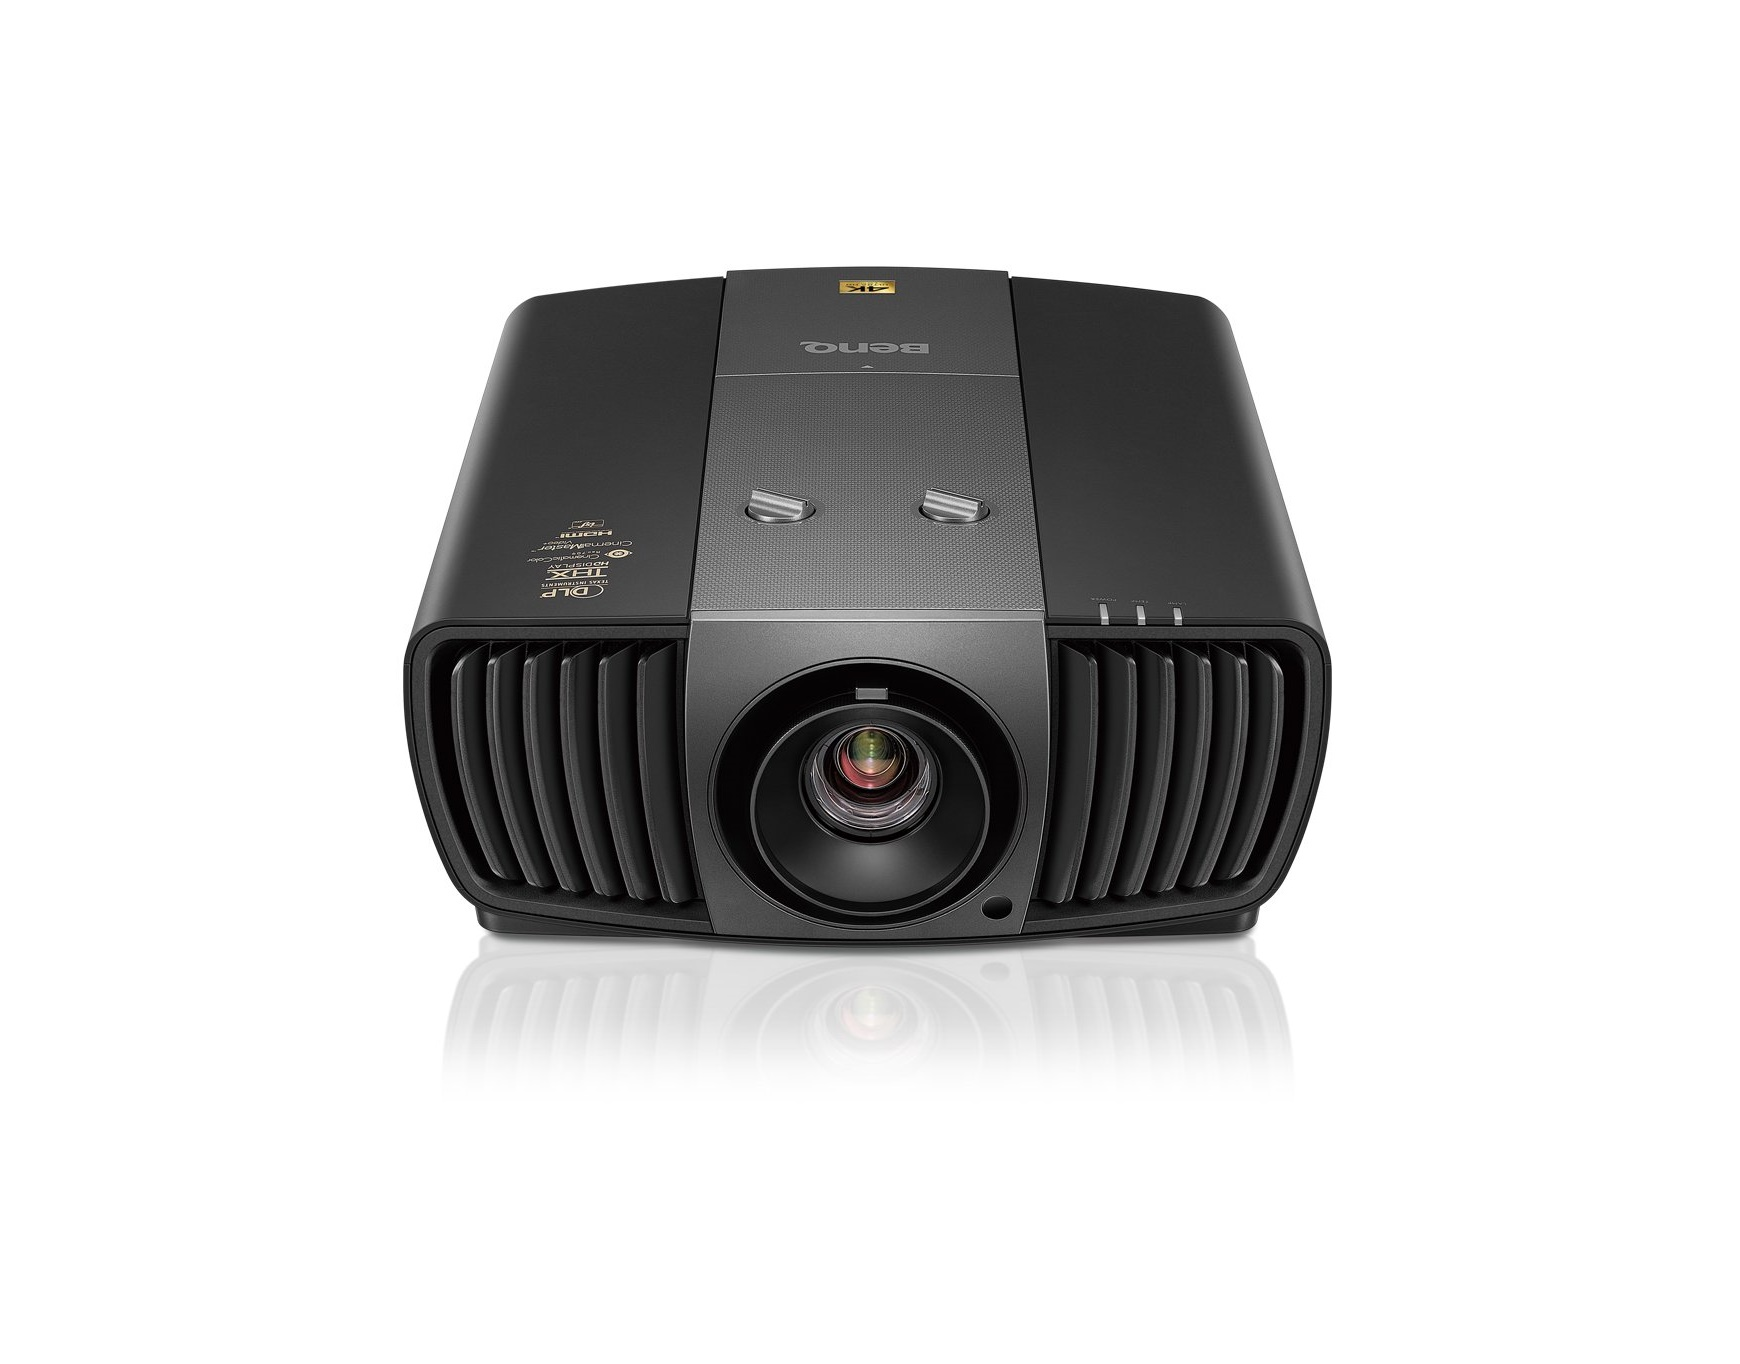 Top 5 best 4k Home Theater Projector in 2020 review